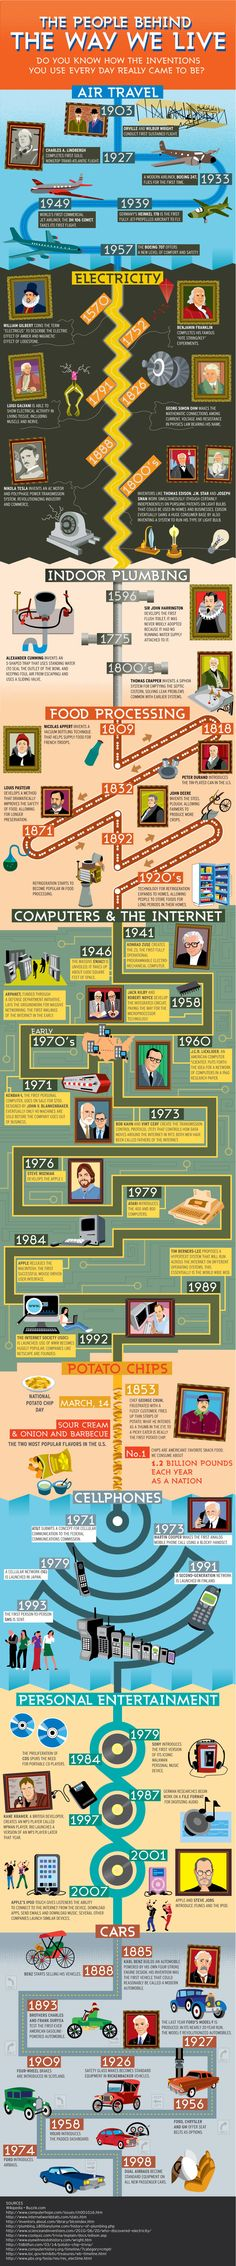 Great innovators and what they gave us.